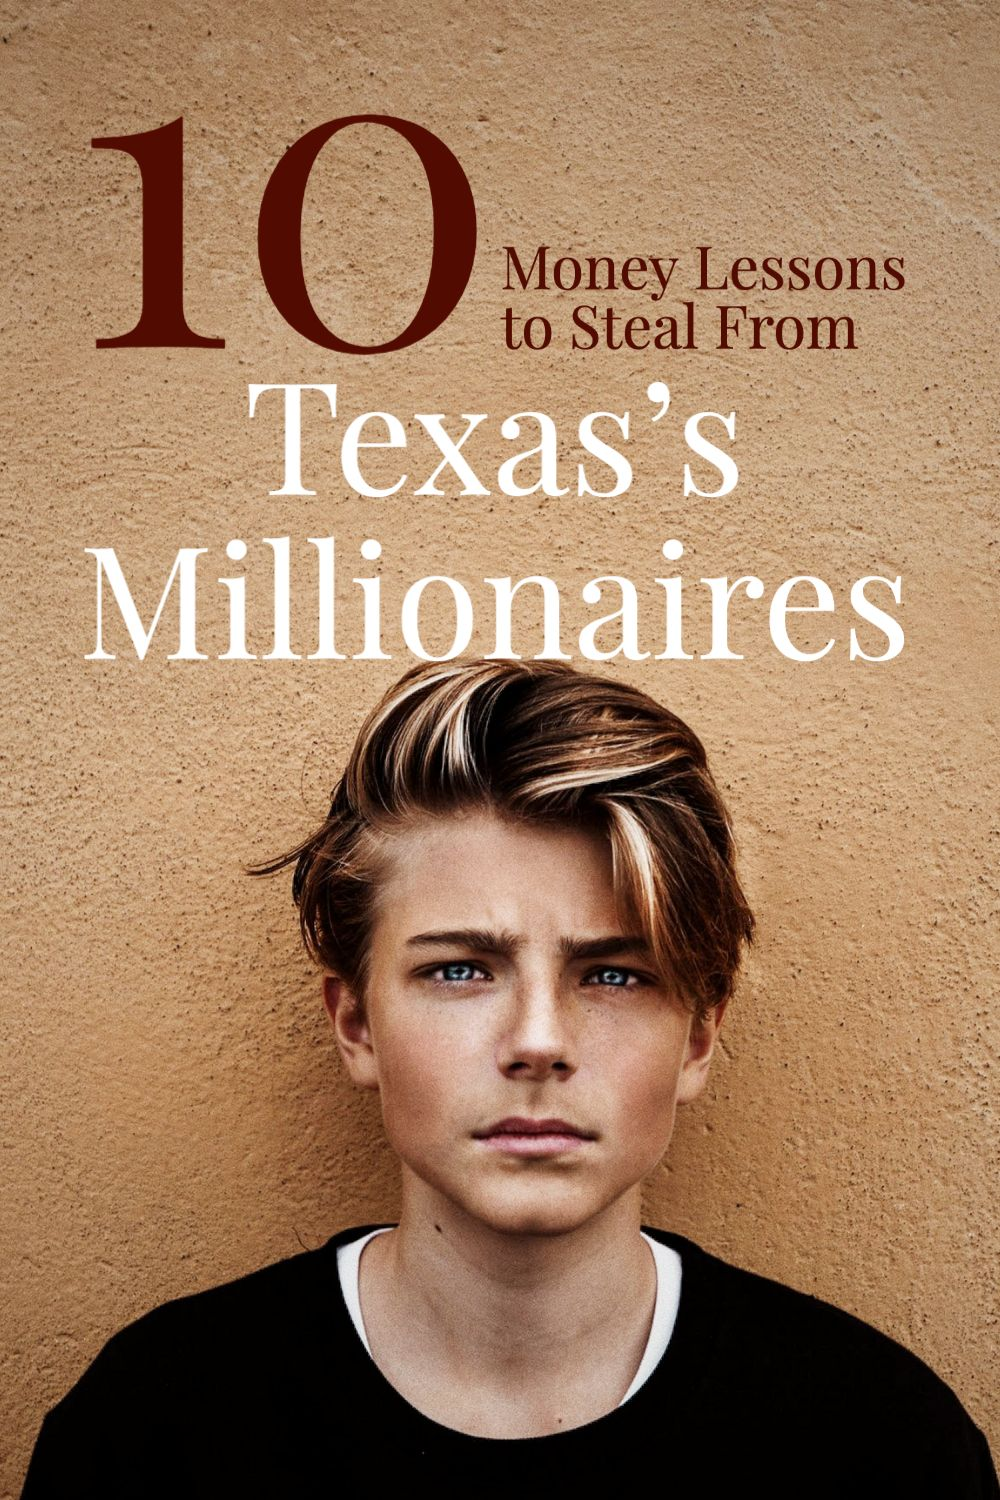 10 Money Lessons to Steal From Texas's Millionaires